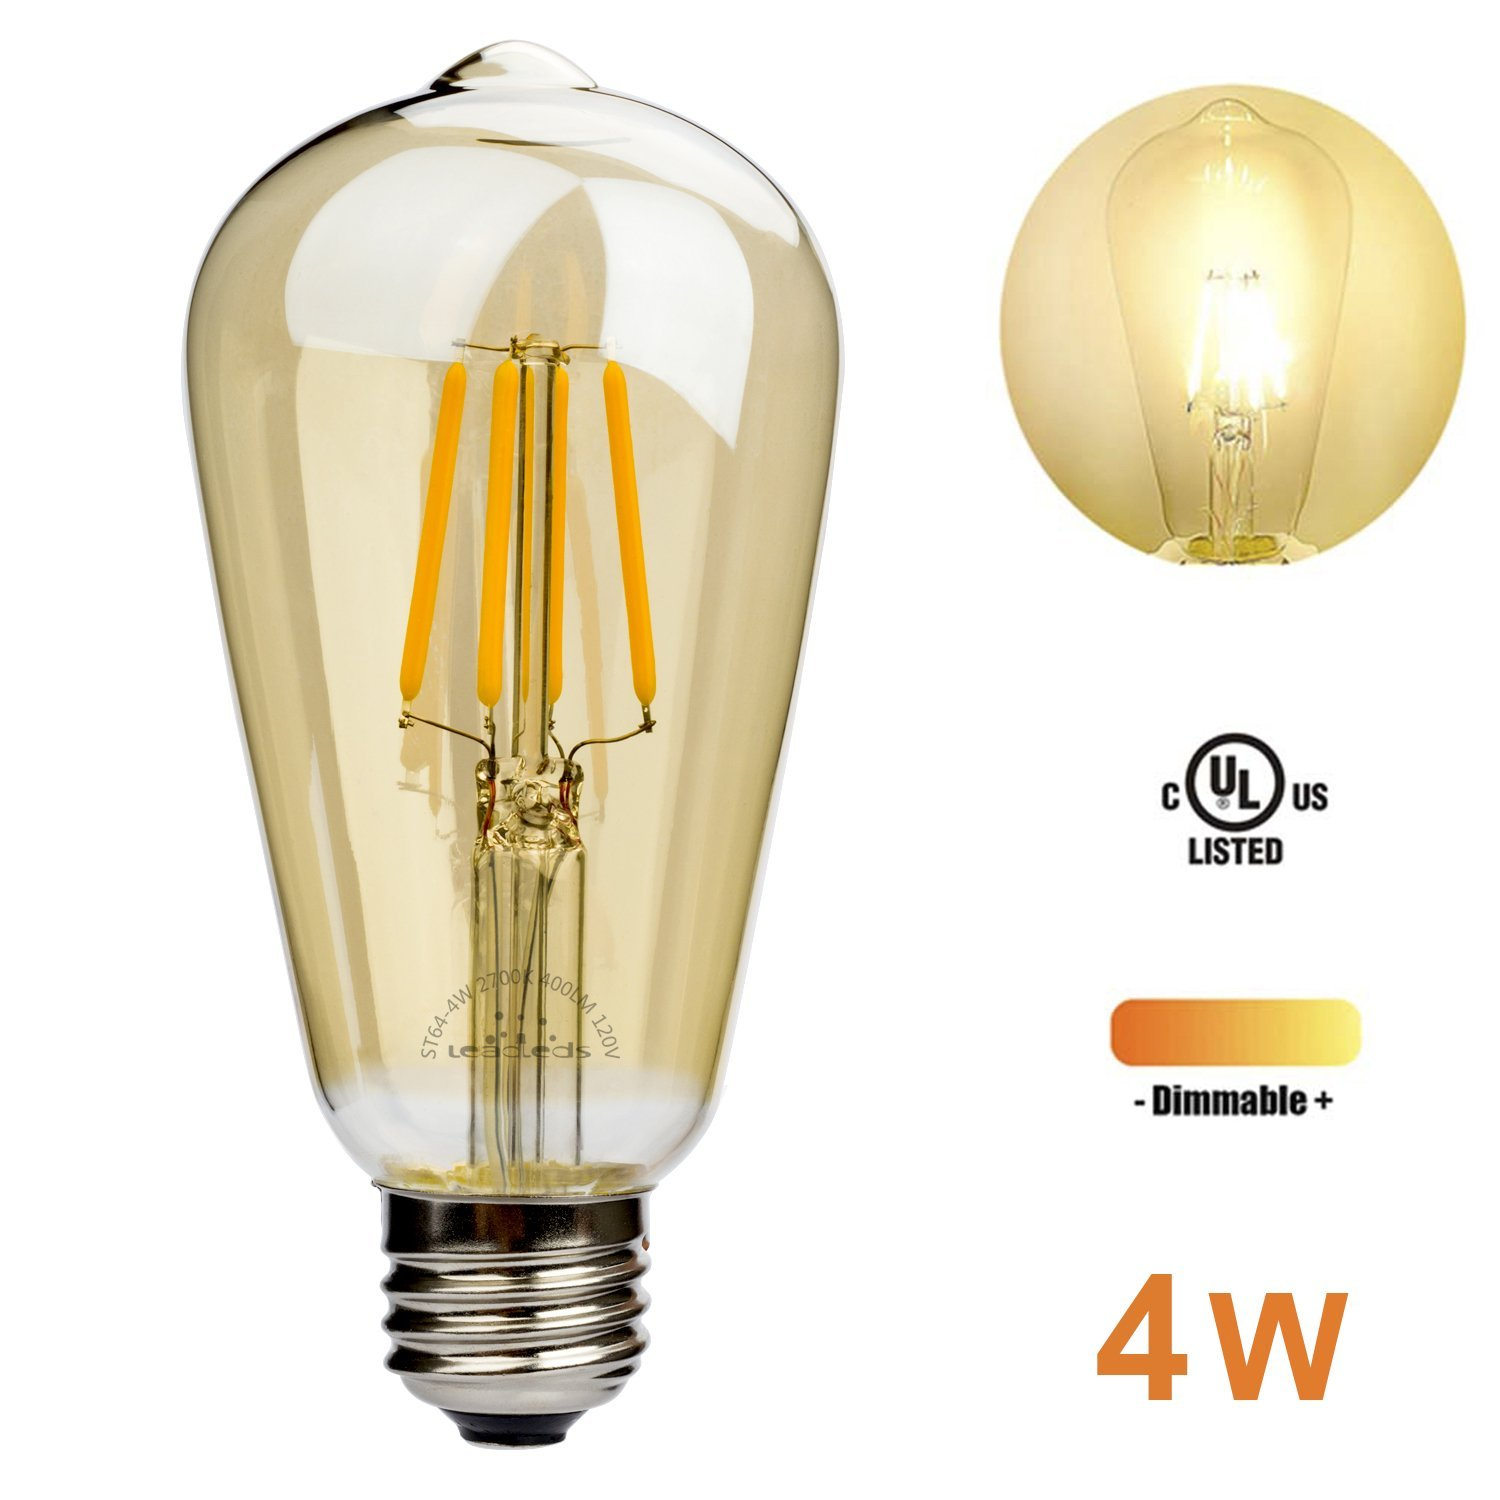 Leadleds Vintage LED Filament Bulb, 4W Antique Edison Bulb, E26 Medium Base, 400 Lumens 2700K Warm White, Amber Glass, Ideals for use in Coffee,Restaurant,Home,Kitchen,Garden